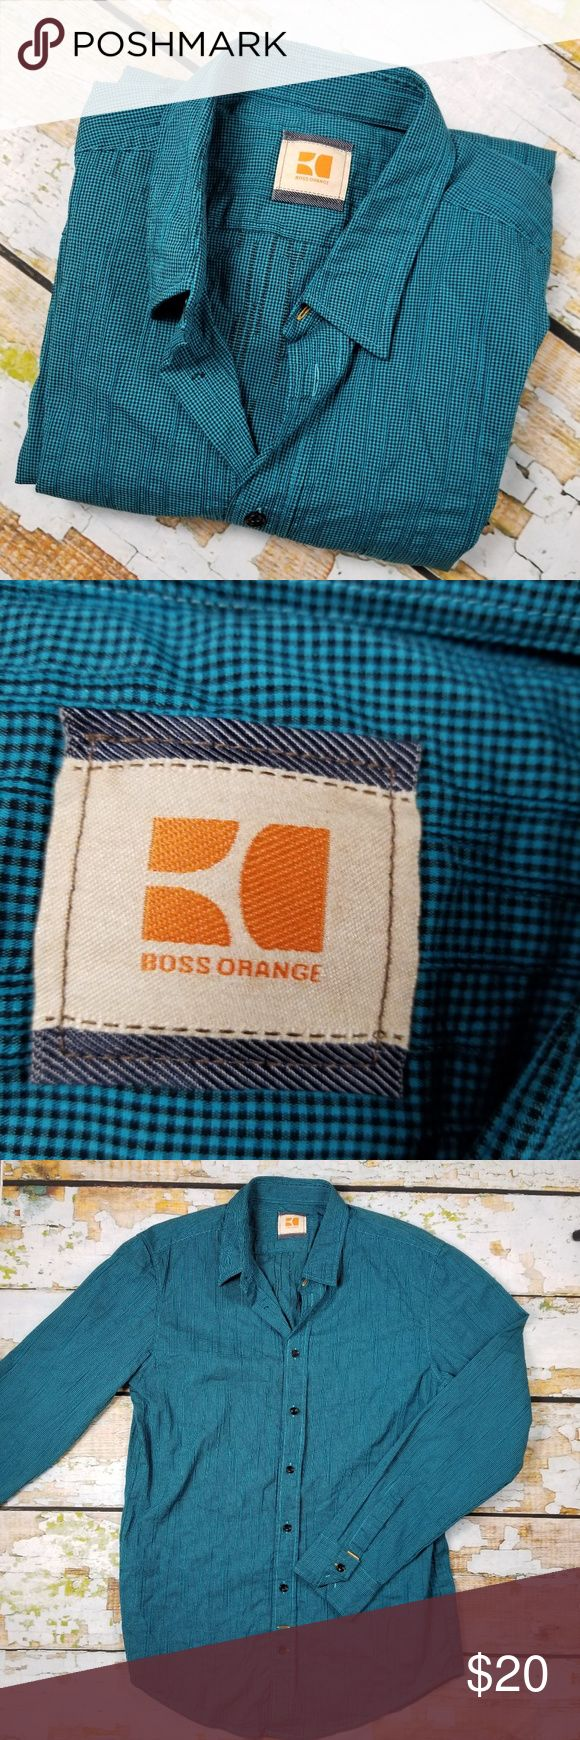 "Boss Orange size L Men's dress shirt button down Length:28"" Armpit to armpit:20"" All of my items are from smoke and pet free household Please feel free leave me any questions about my items BOSS ORANGE Shirts Dress Shirts"